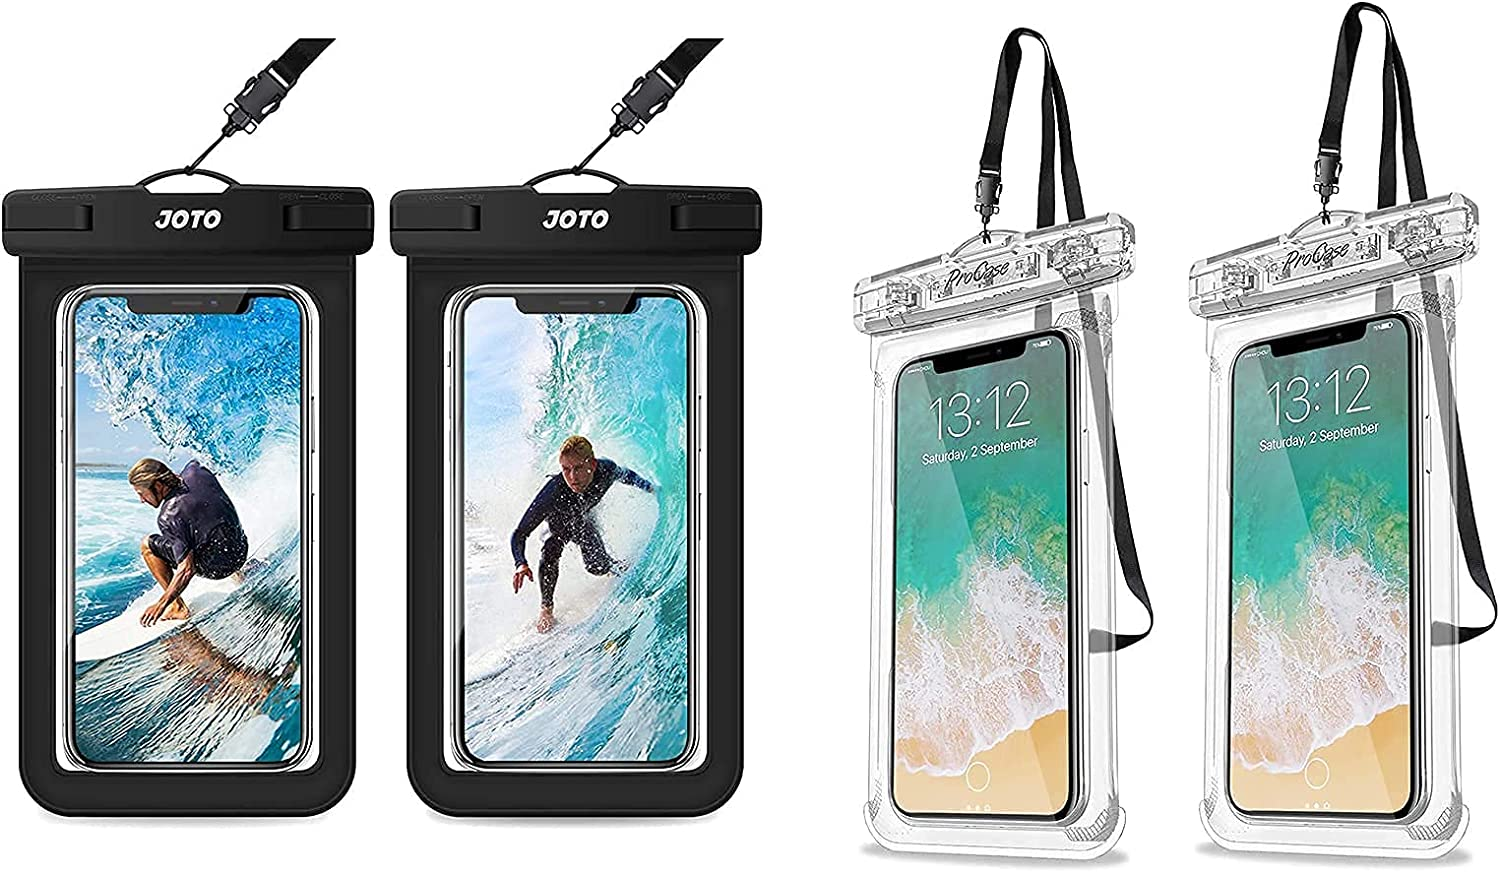 JOTO [2 Pack] Universal Waterproof Pouch Cellphone Dry Bag Case Bundle with ProCase [2 Pack] Universal Waterproof Case for Phones up to 7